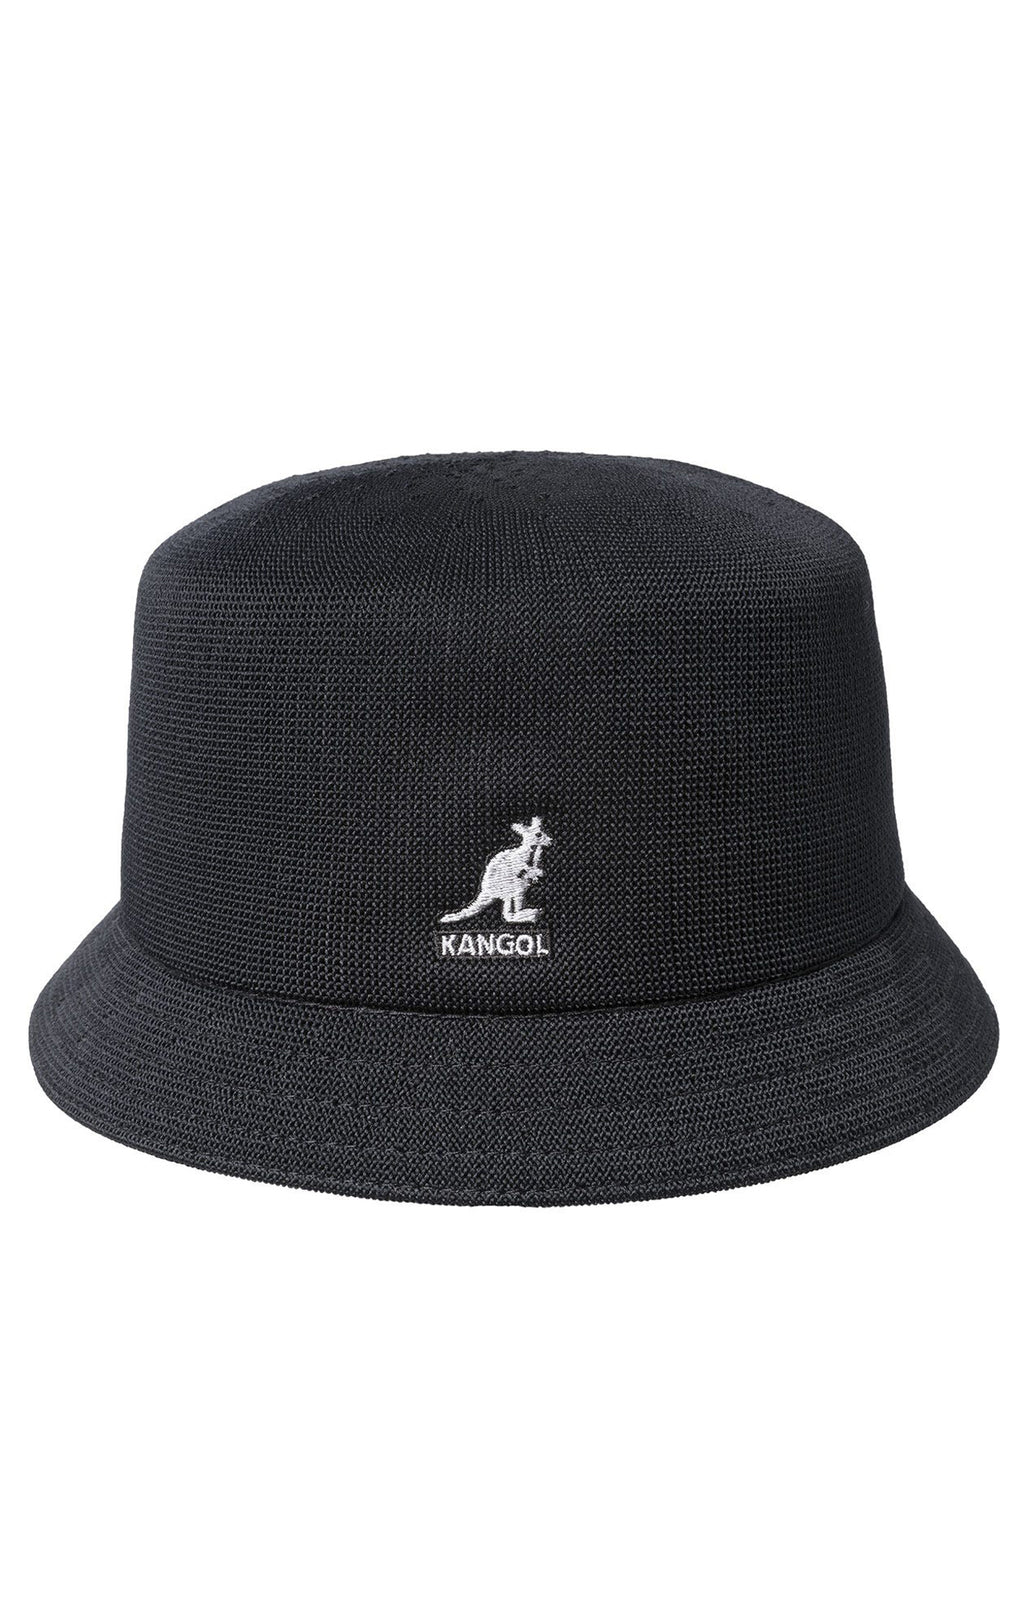 KANGOL TROPIC BIN BUCKET HAT